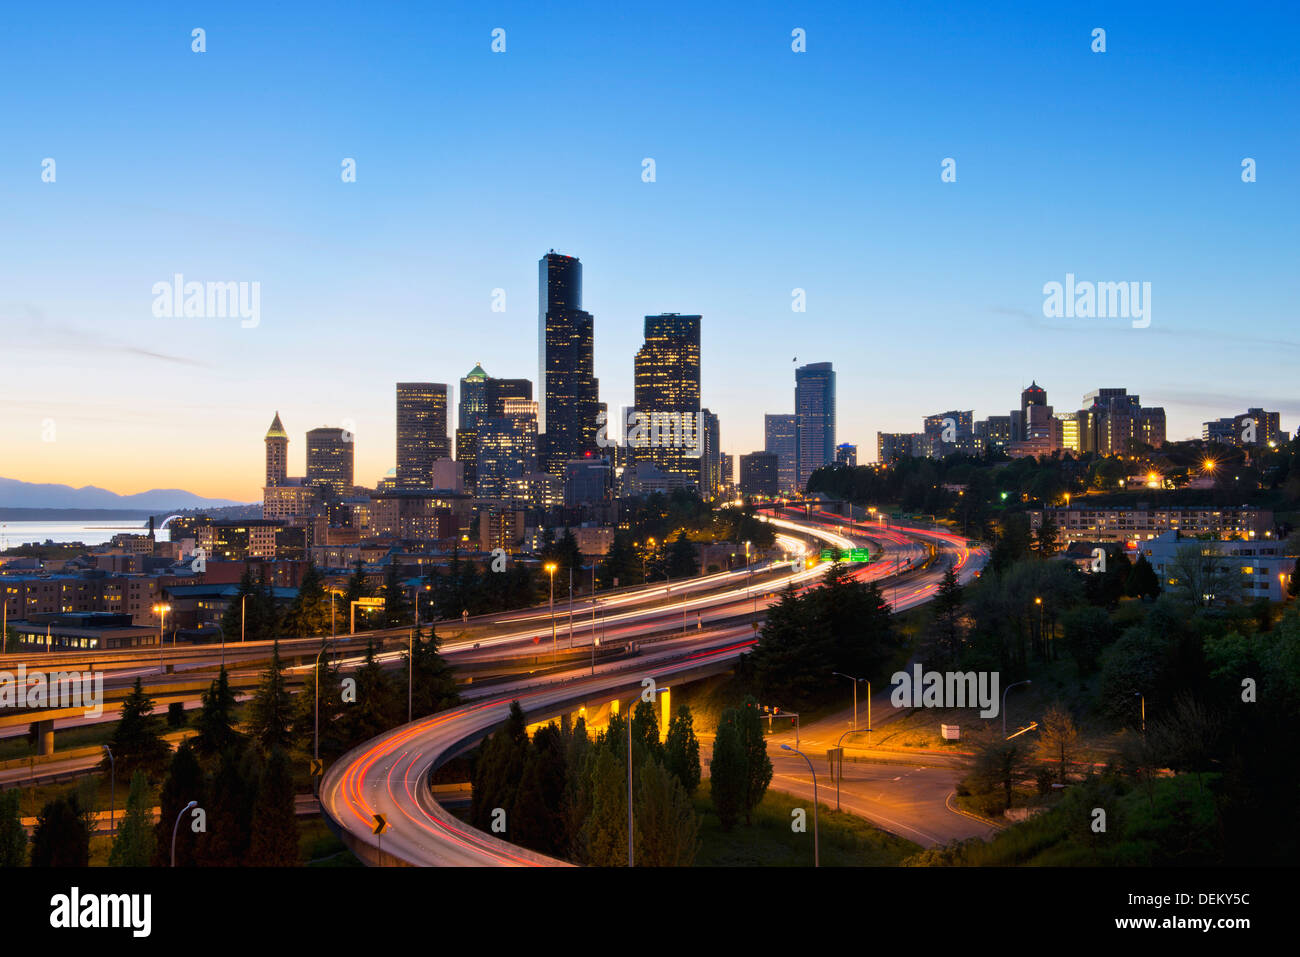 Freeways and Seattle skyline at sunset, Seattle, Washington, United States - Stock Image